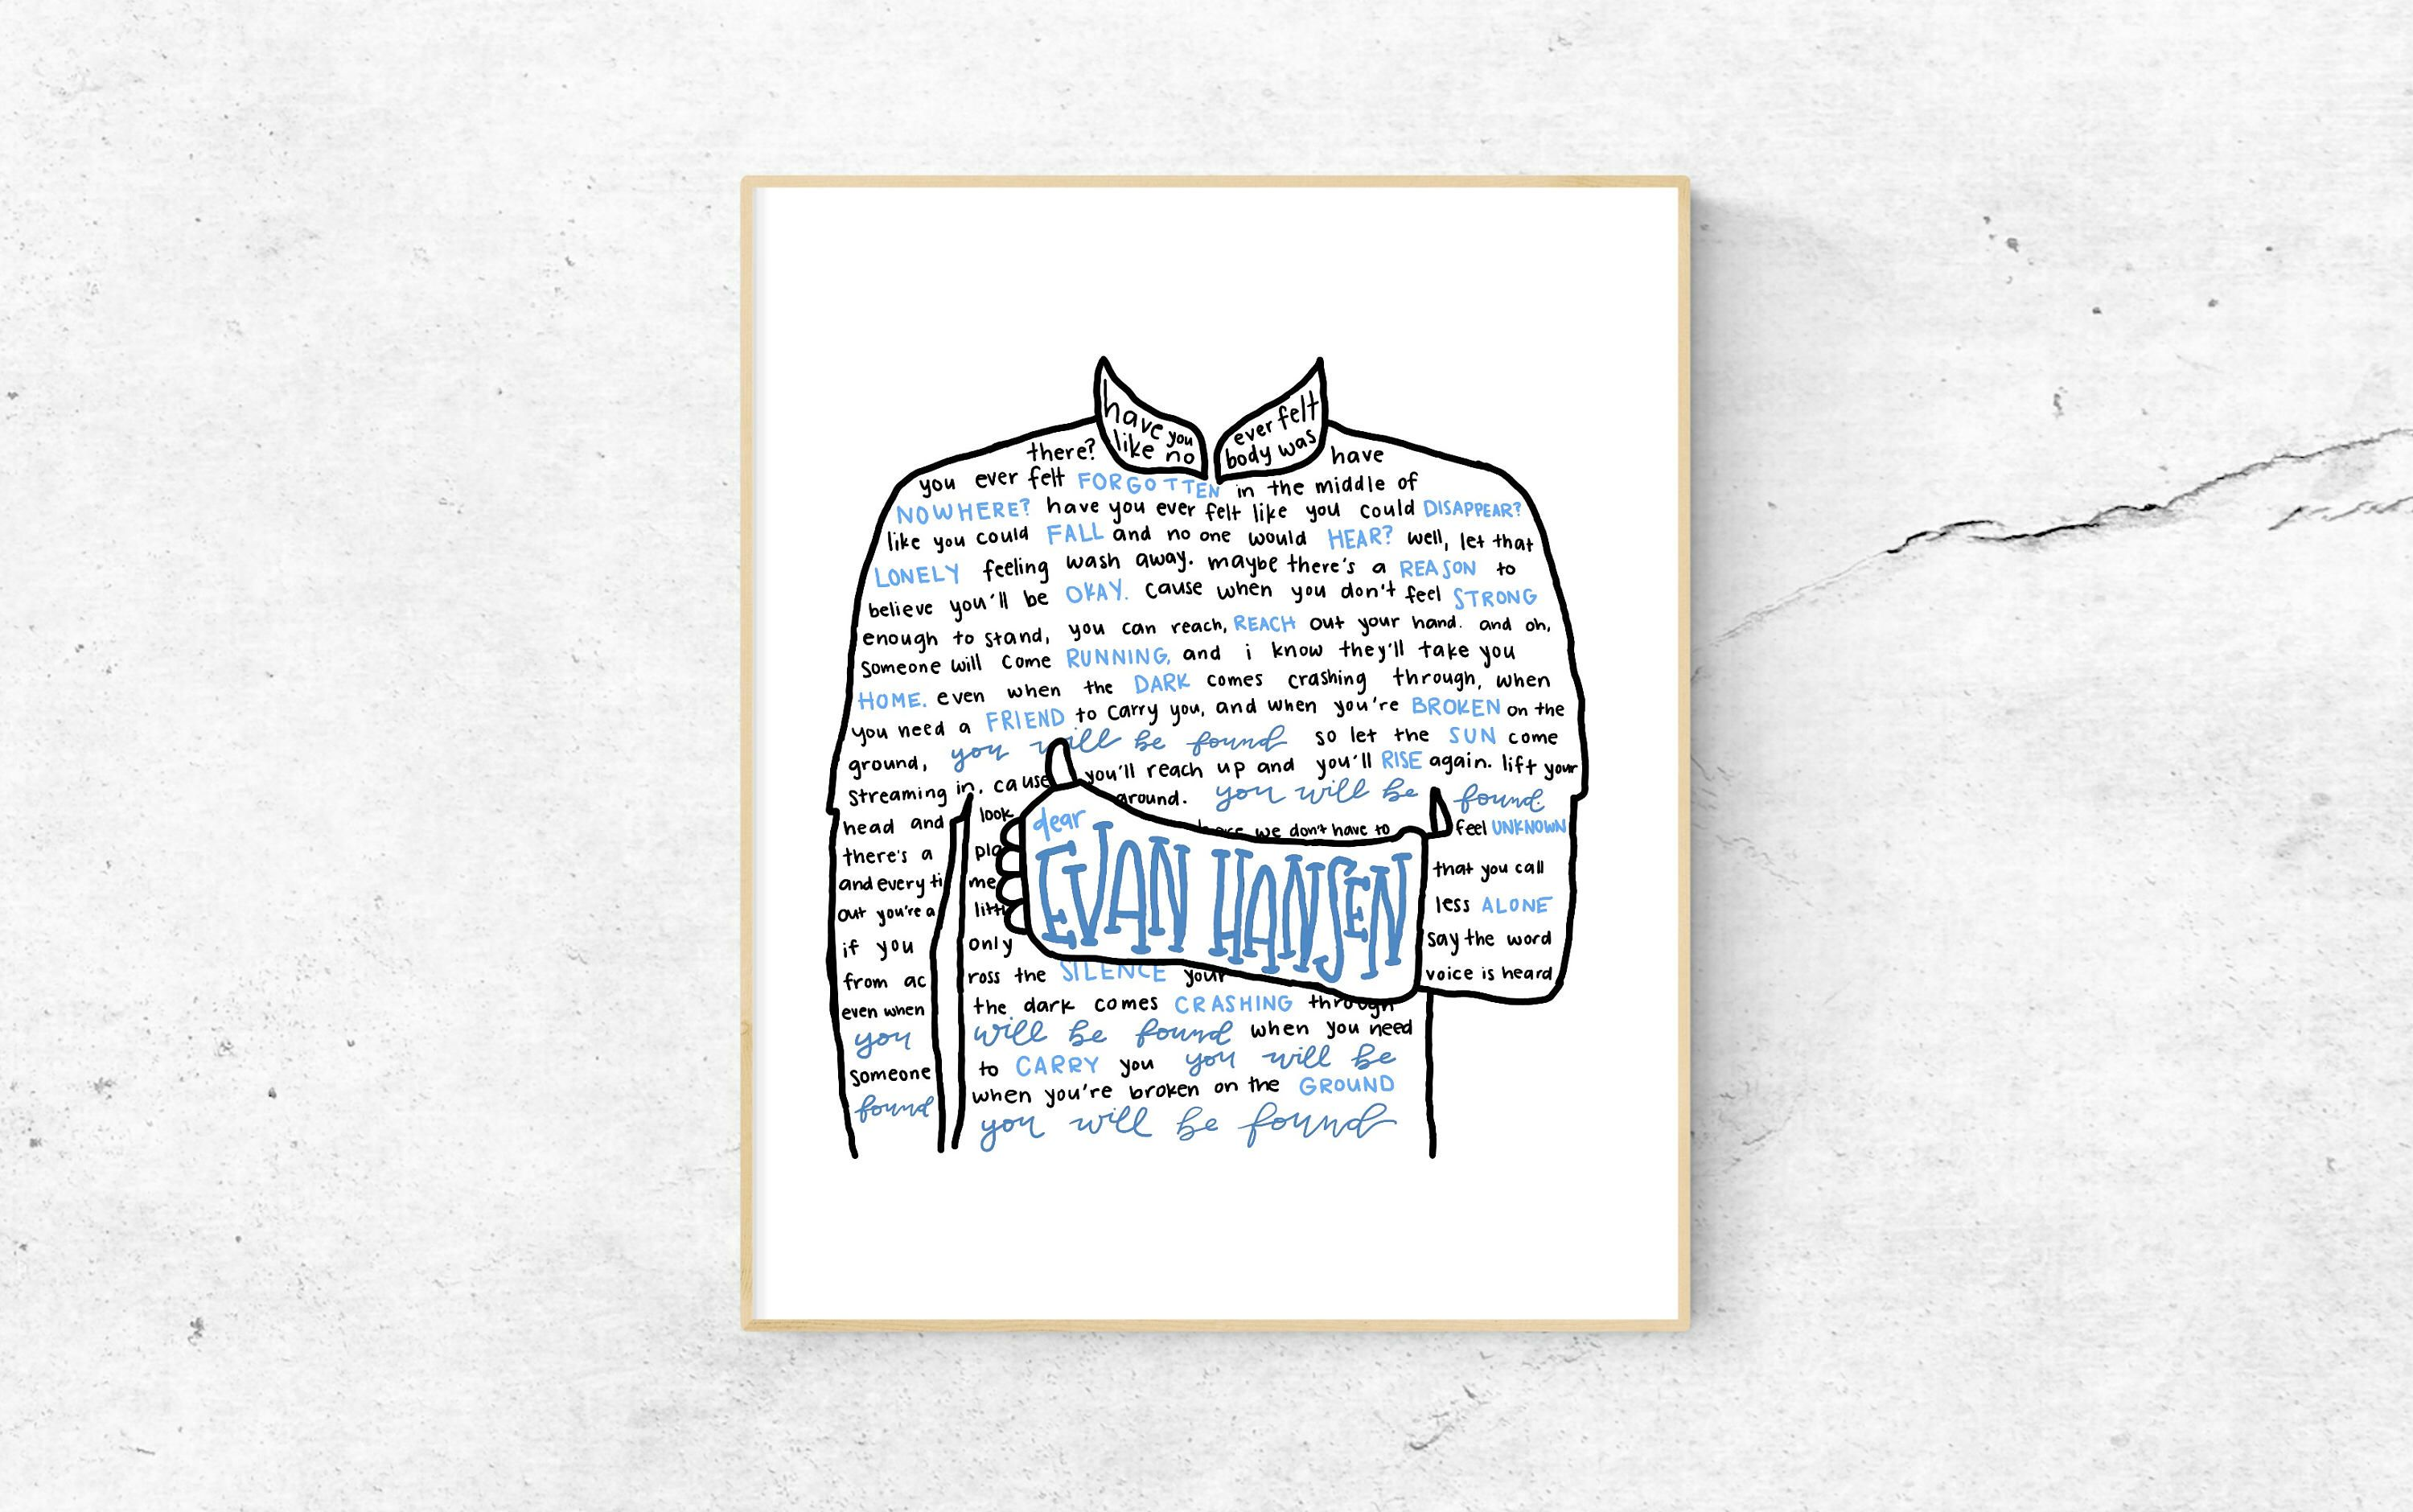 Pin By Georgia Conway On Theater Things Dear Evan Hansen Musical Dear Even Hansen Dear Evan Hansen